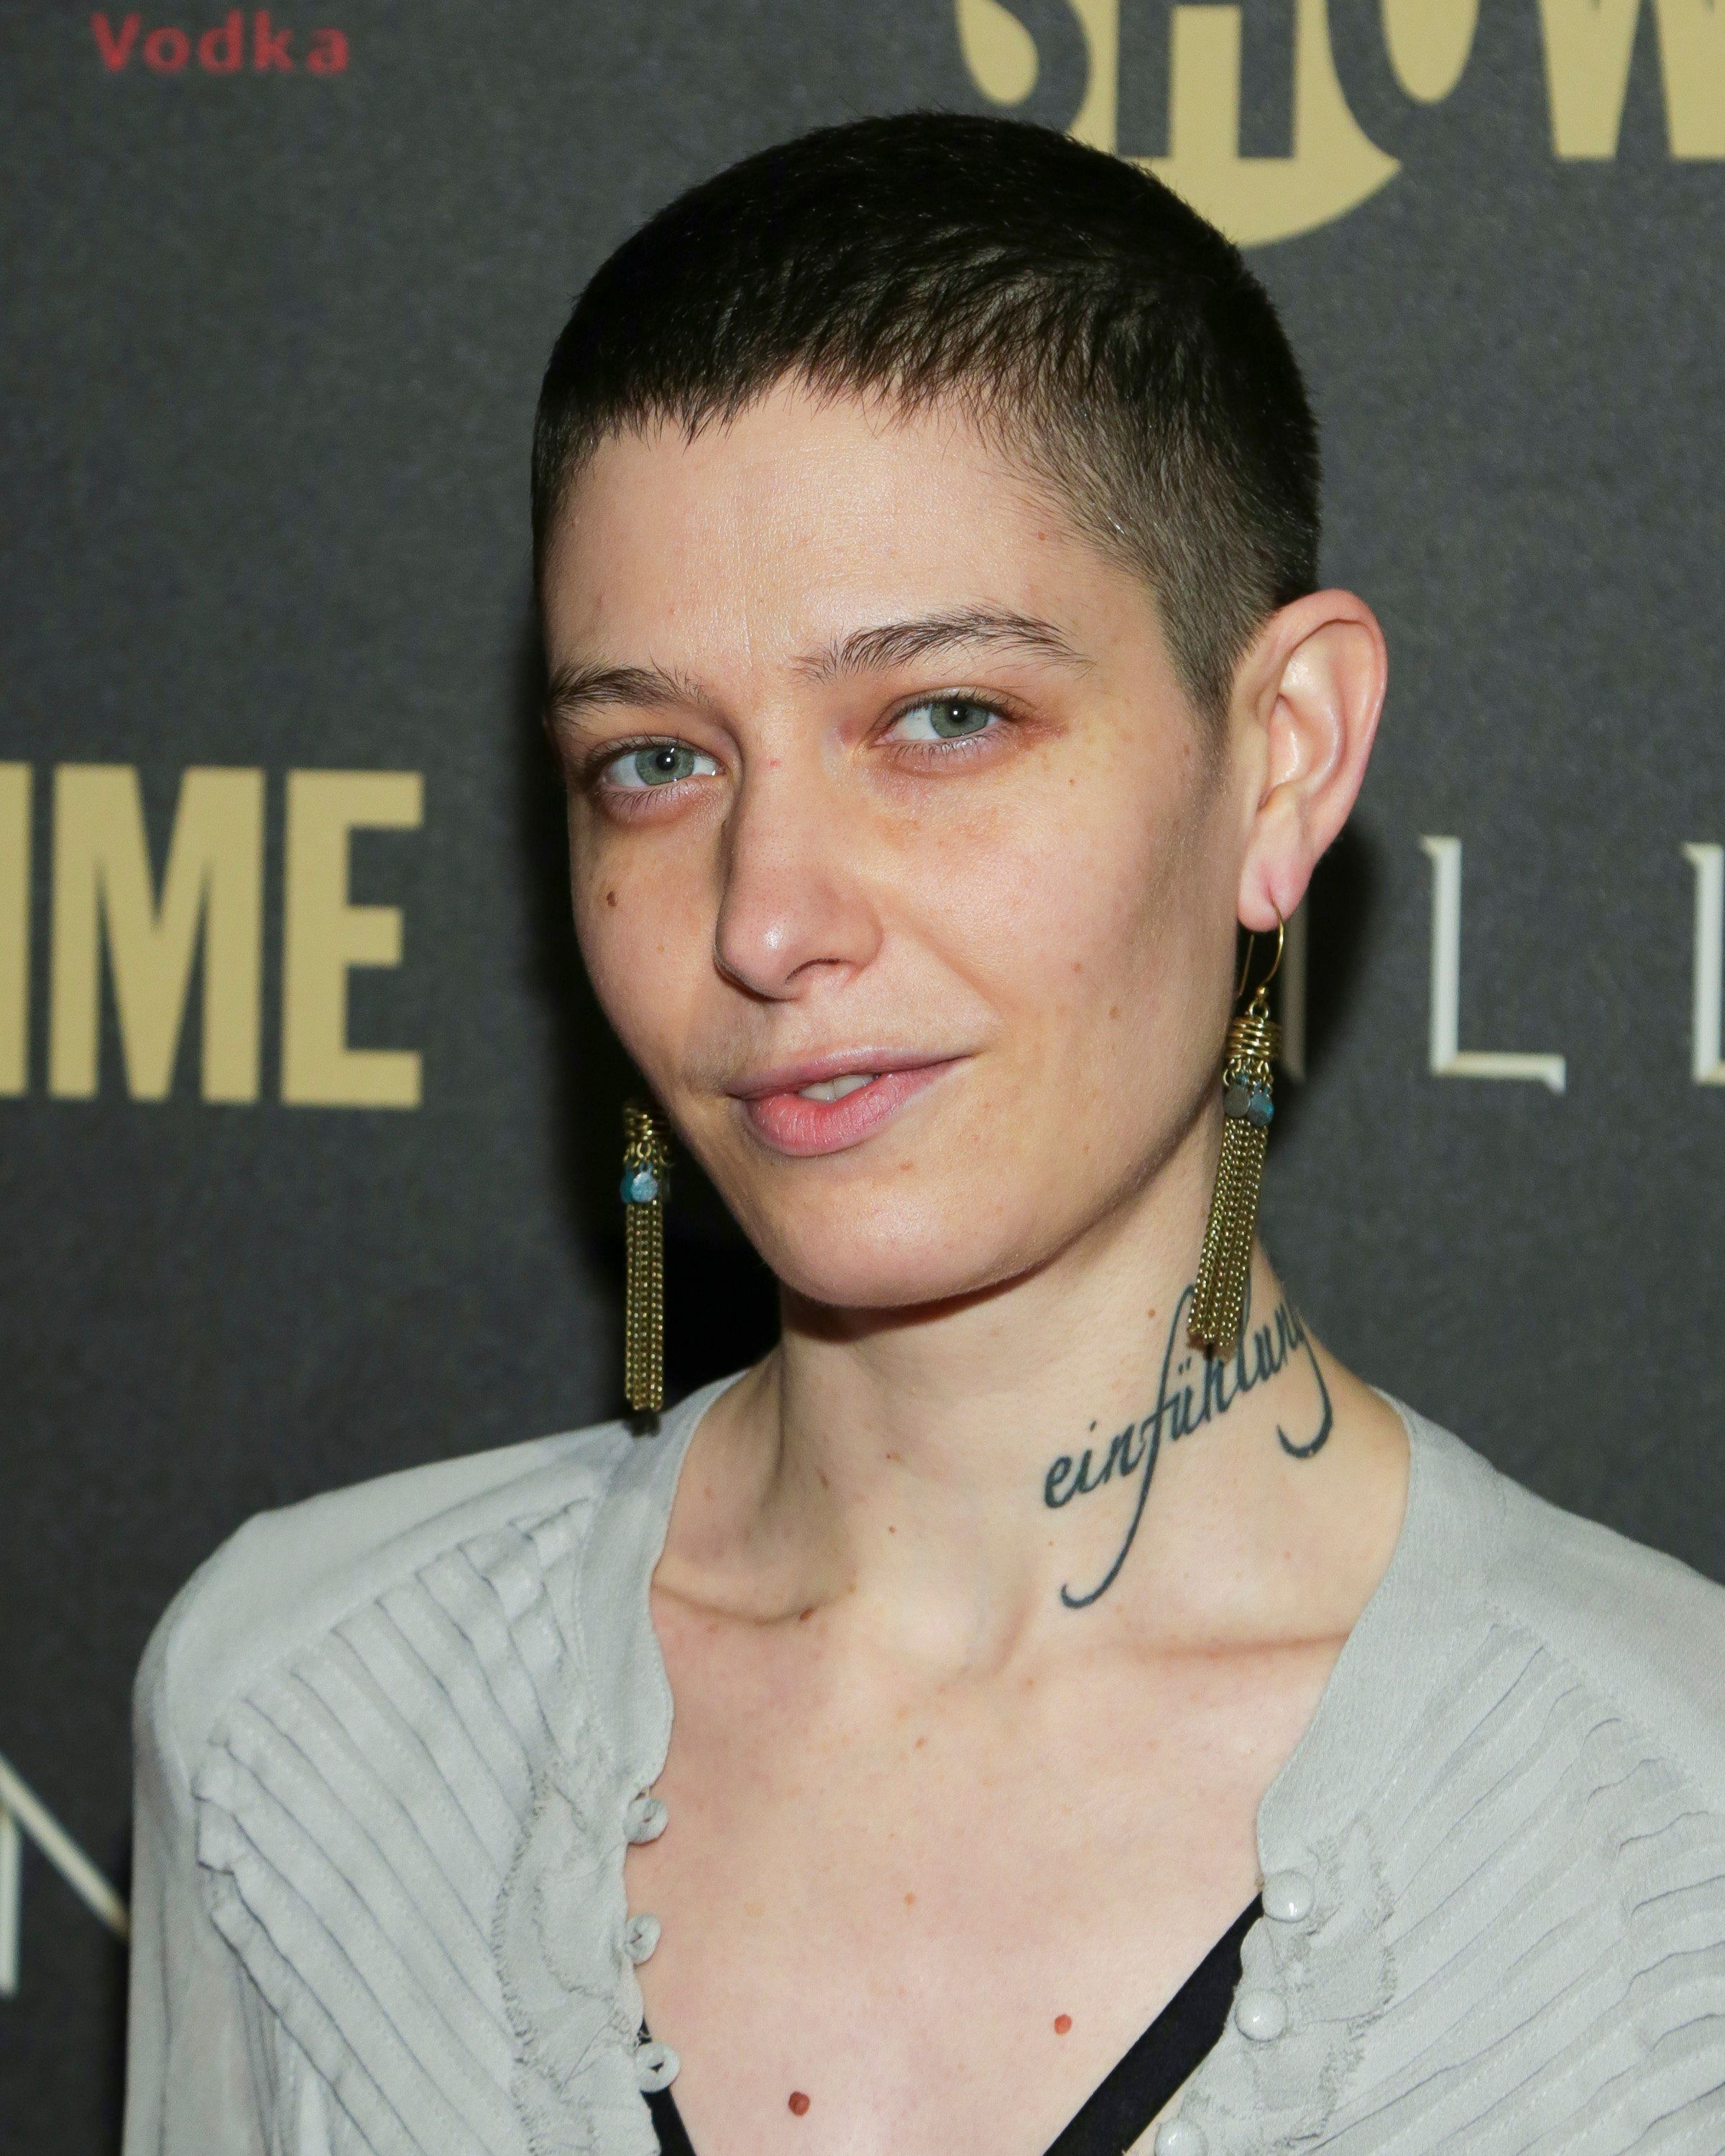 NEW YORK, NY - FEBRUARY 13:  Actress Asia Kate Dillon attends Showtime's 'Billions' Season 2 premiere held at Cipriani 25 Broadway on February 13, 2017 in New York City.  (Photo by Brent N. Clarke/FilmMagic)